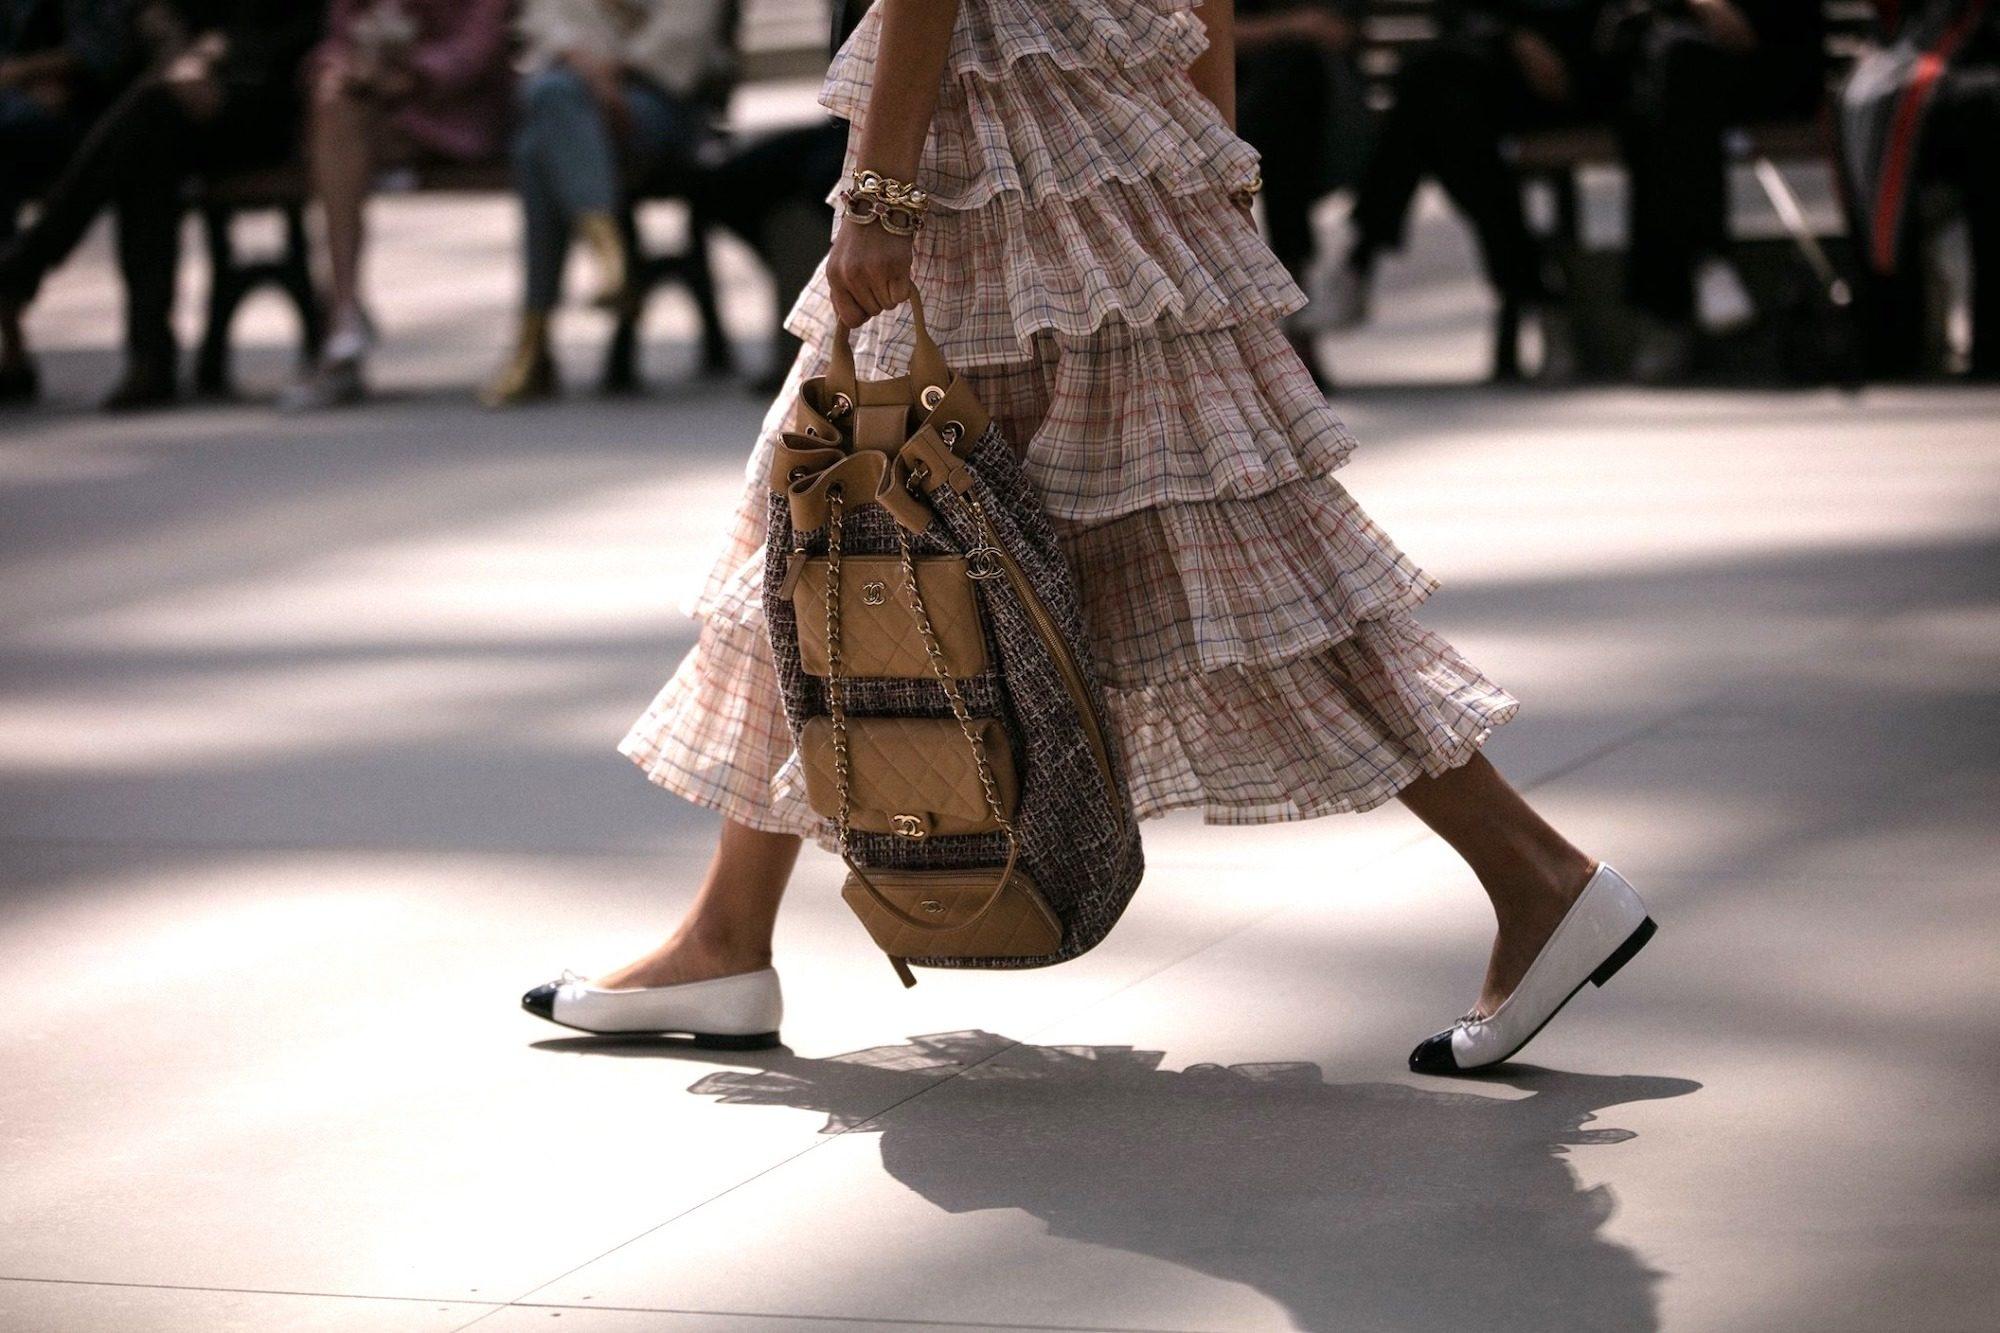 How to shop in Paris? We have some tips here, like where to buy the right outfit like this frilly skirt paired with a rucksack and pumps.